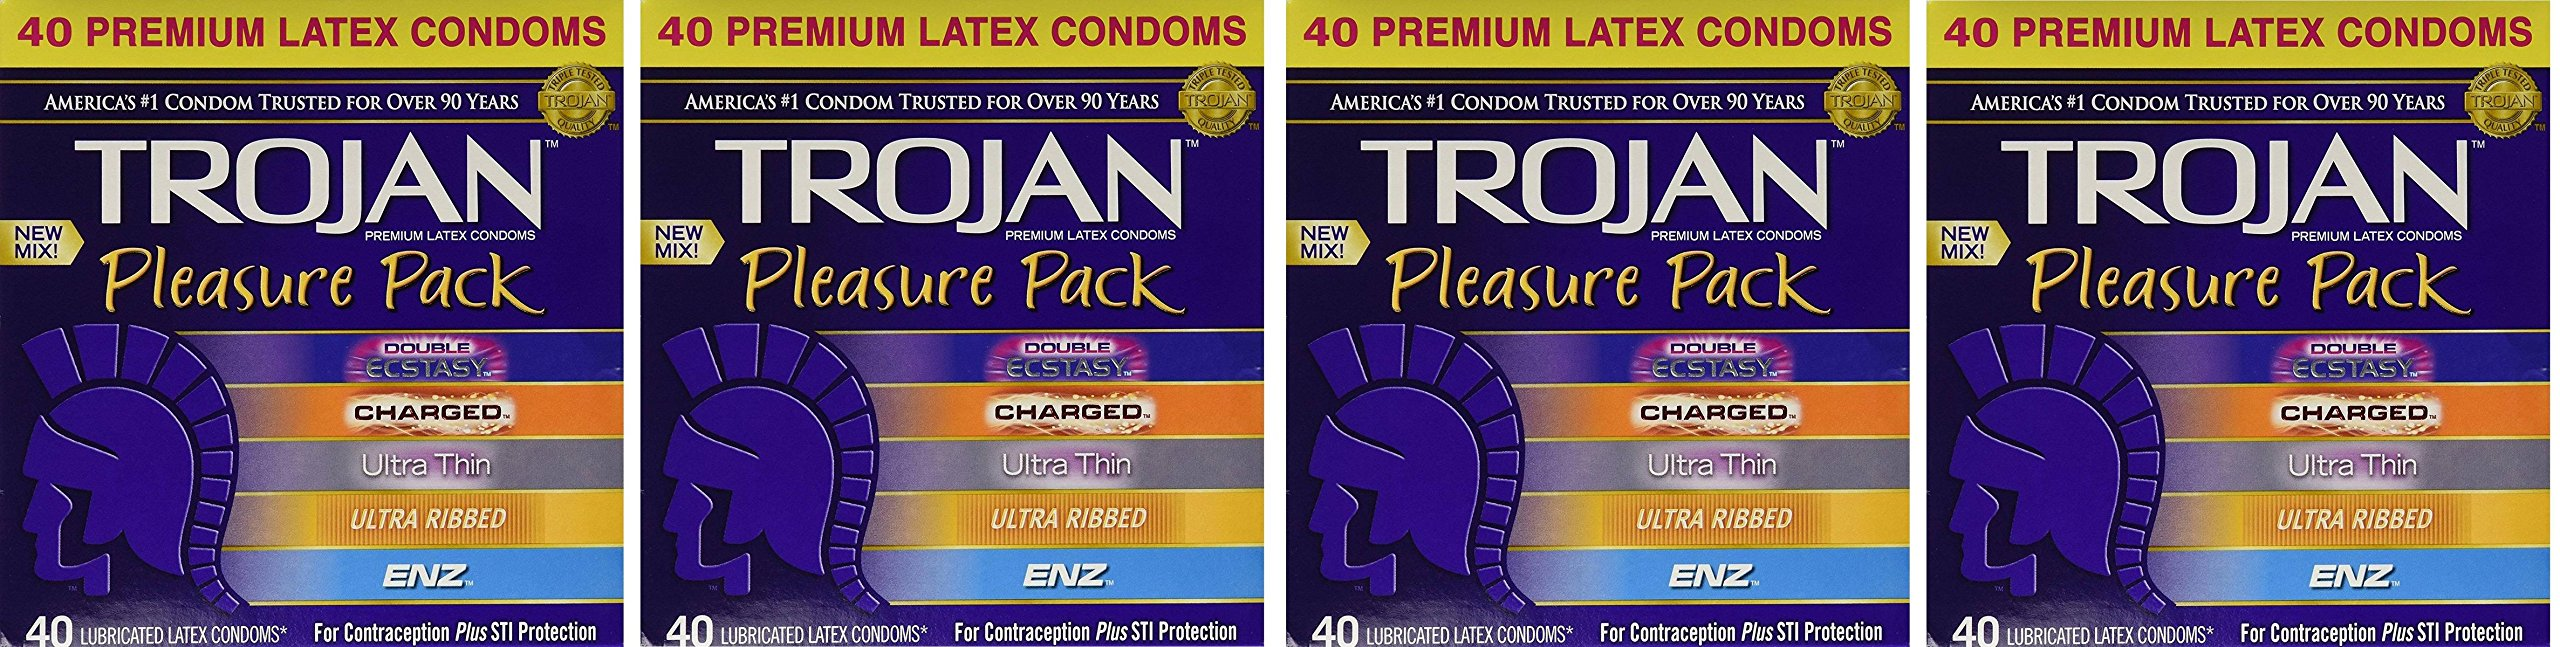 Trojan Pleasure Pack NEW MIX pCtPLs Premium Lubricated Latex Condoms - 40 Count Variety Pack, 4 Pack by Trojan